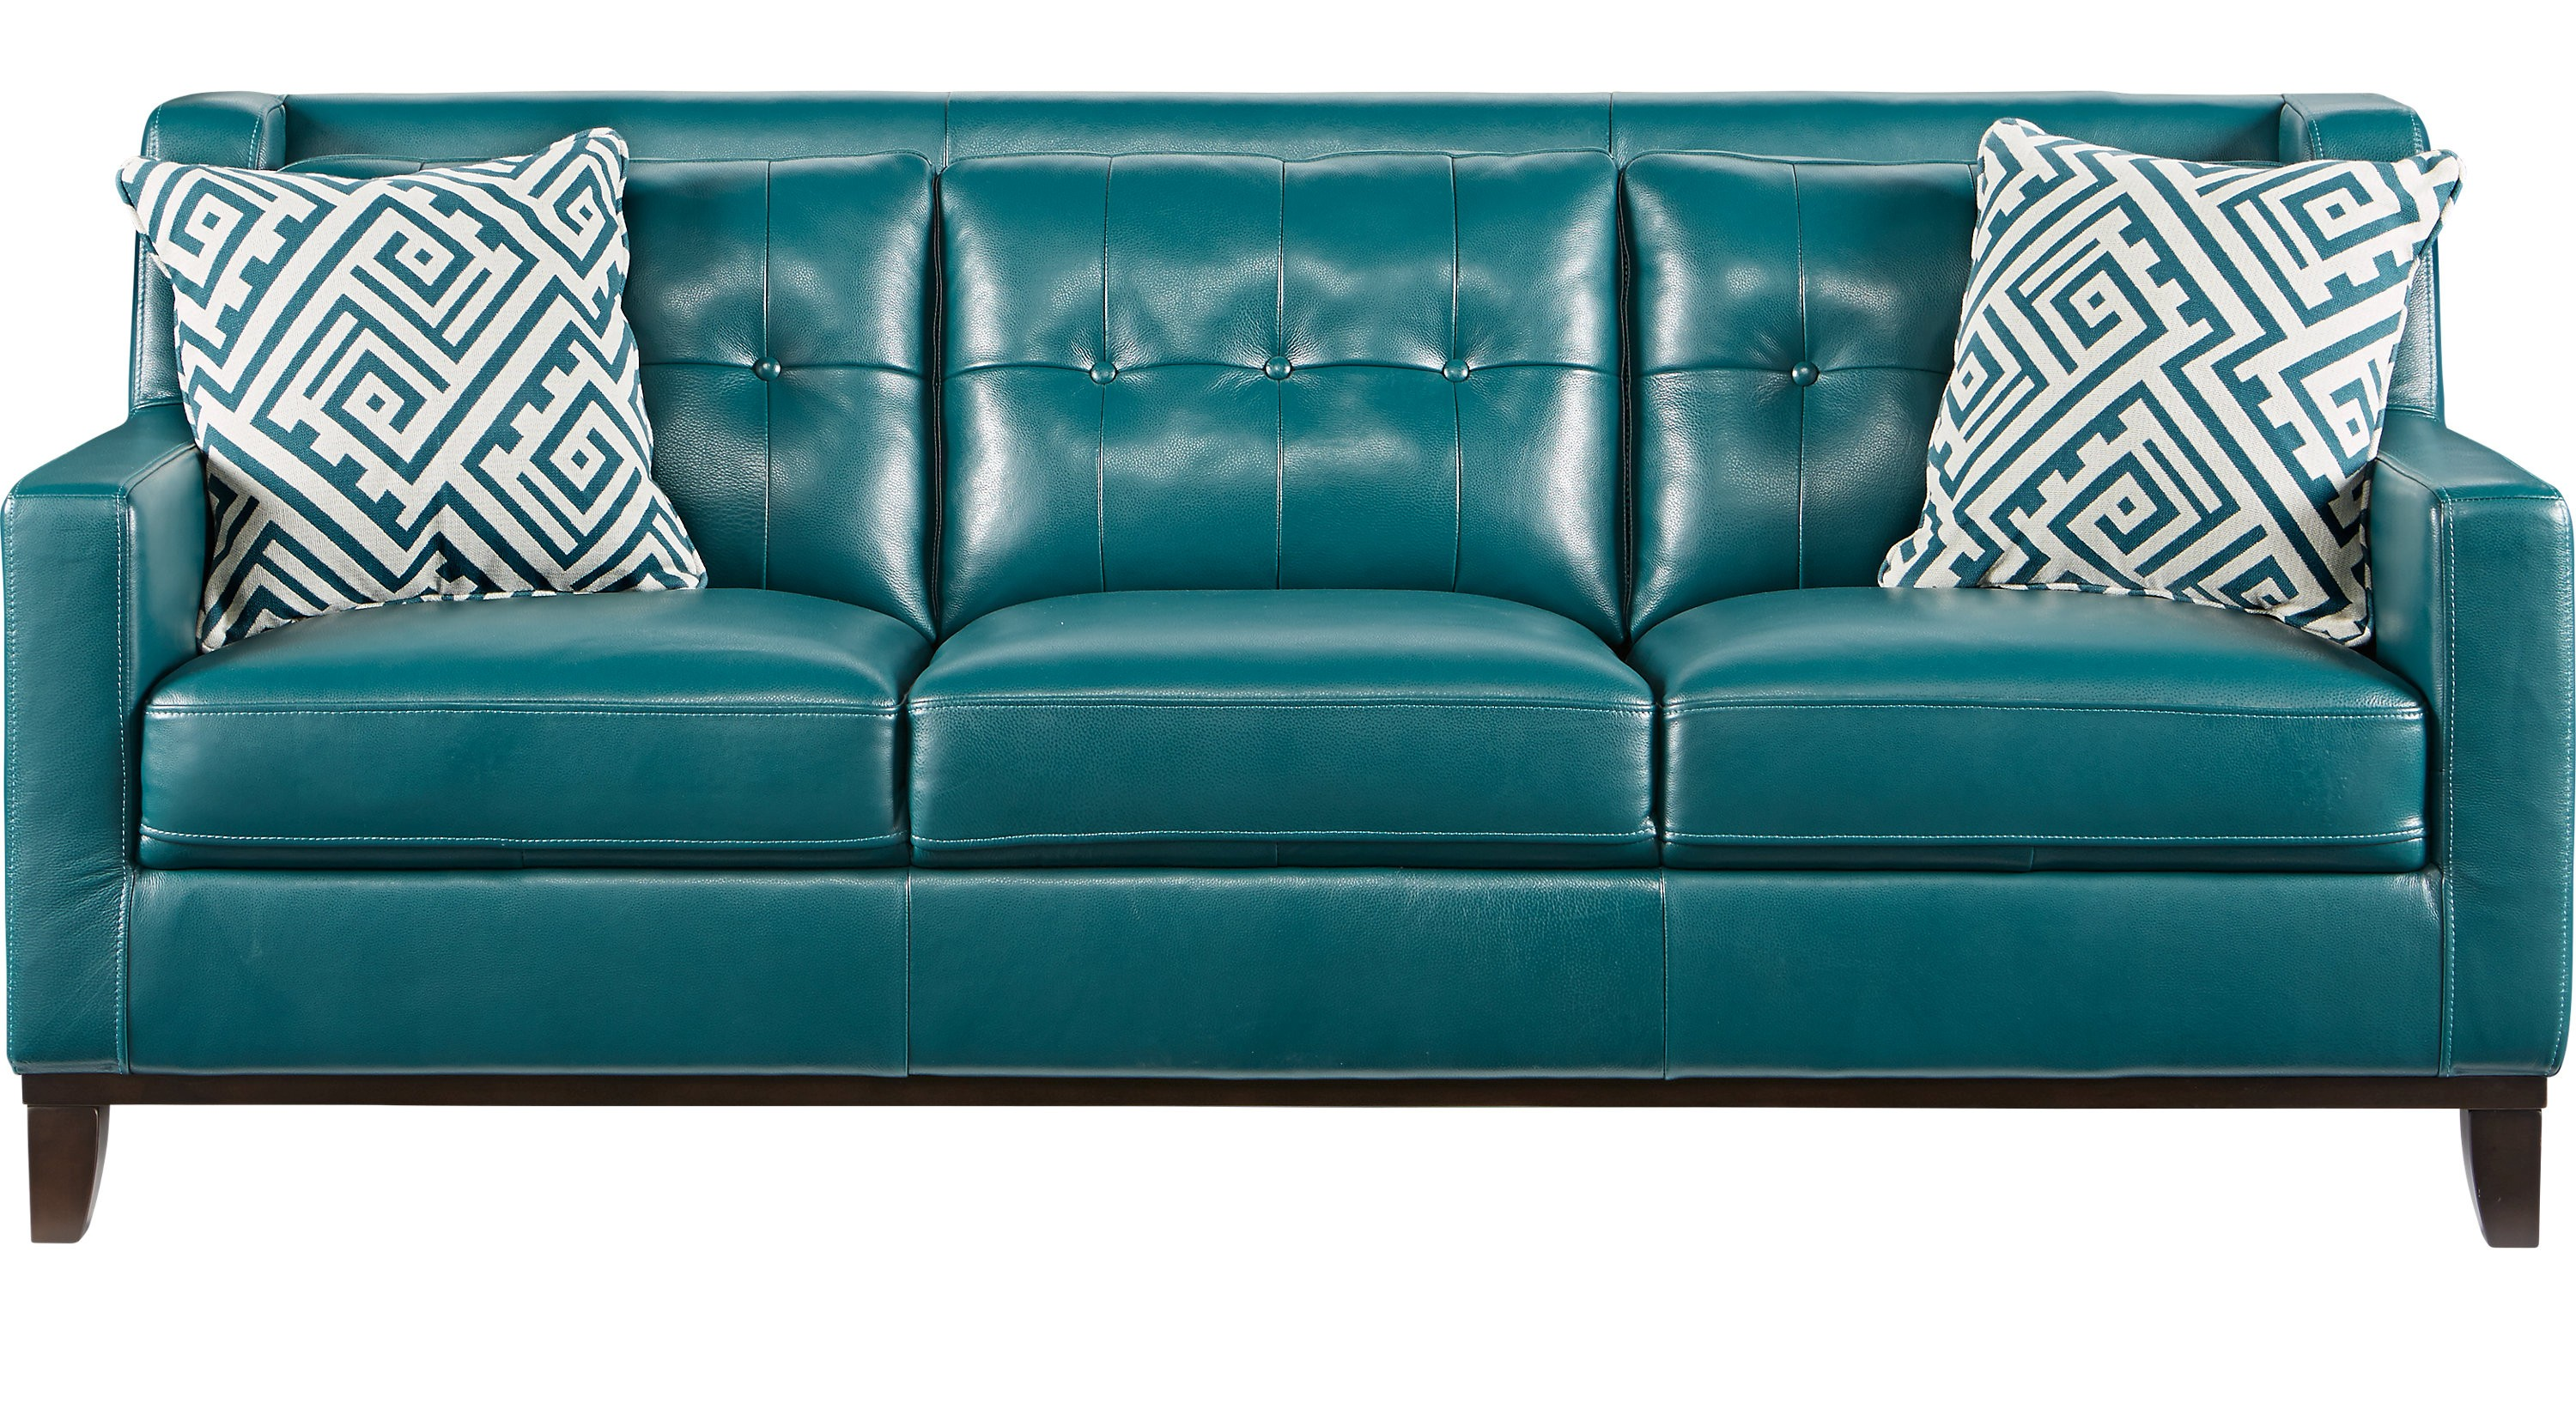 Green Leather sofa Fantastic Reina Green Leather sofa Classic Contemporary Model